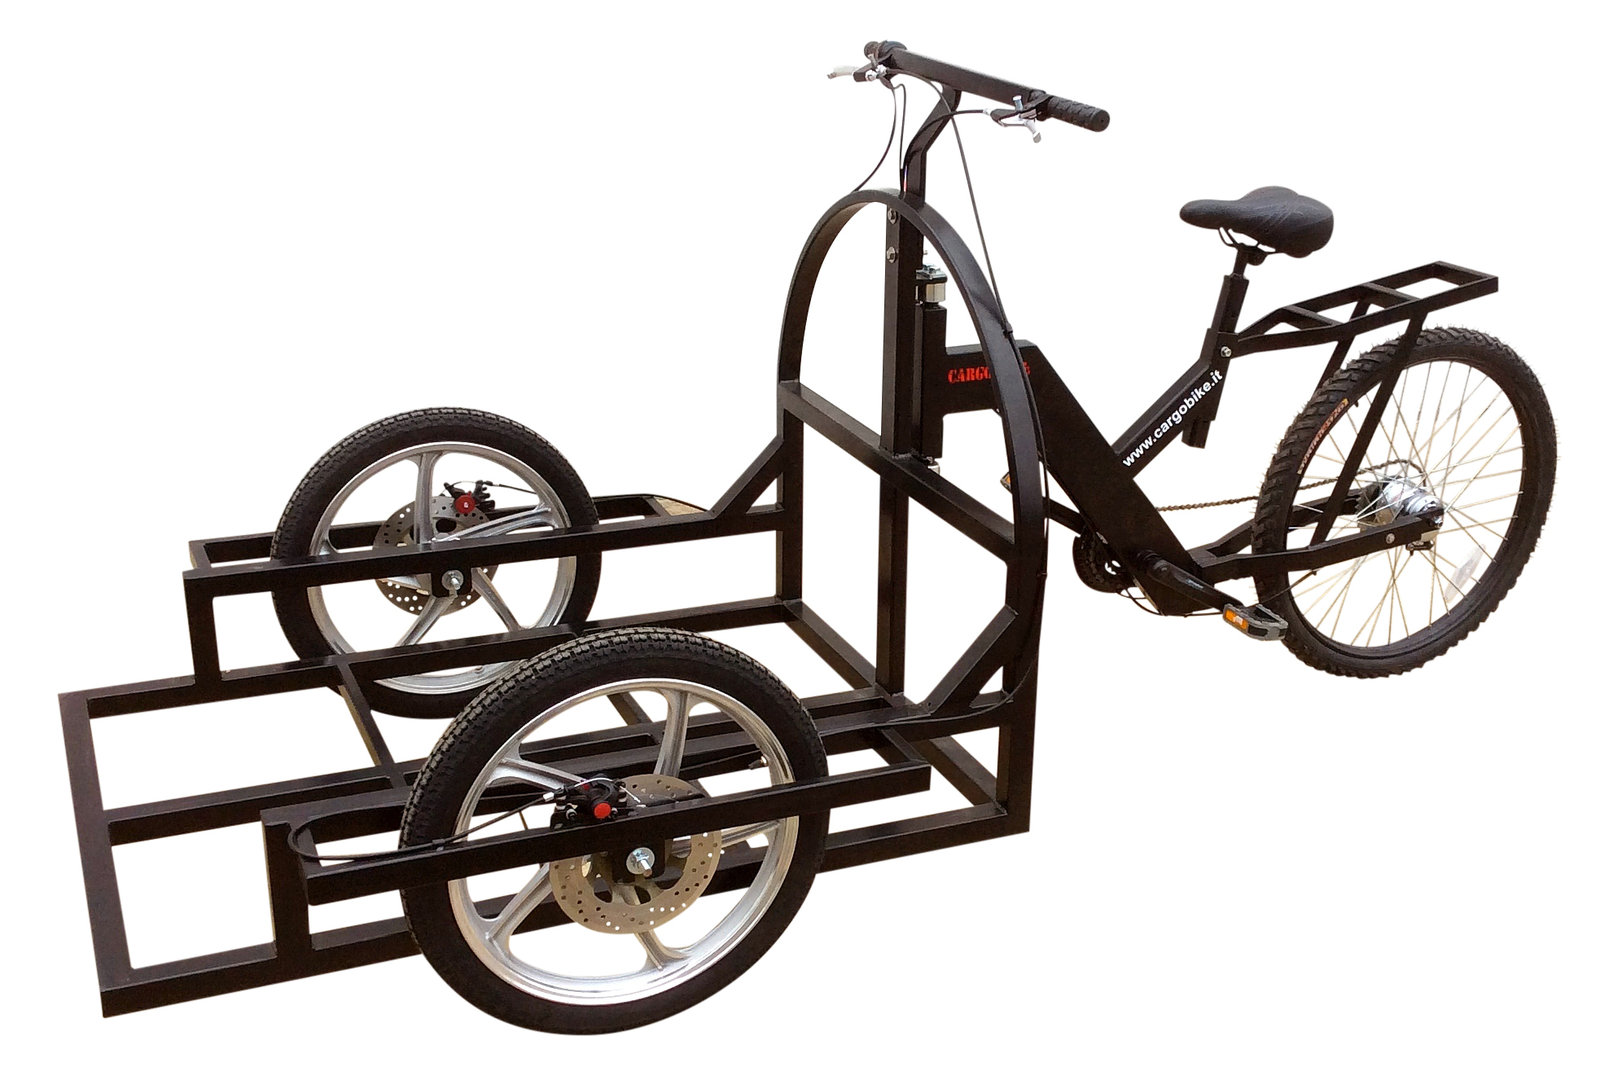 ATTILA Work Tricycle Bike Cargo